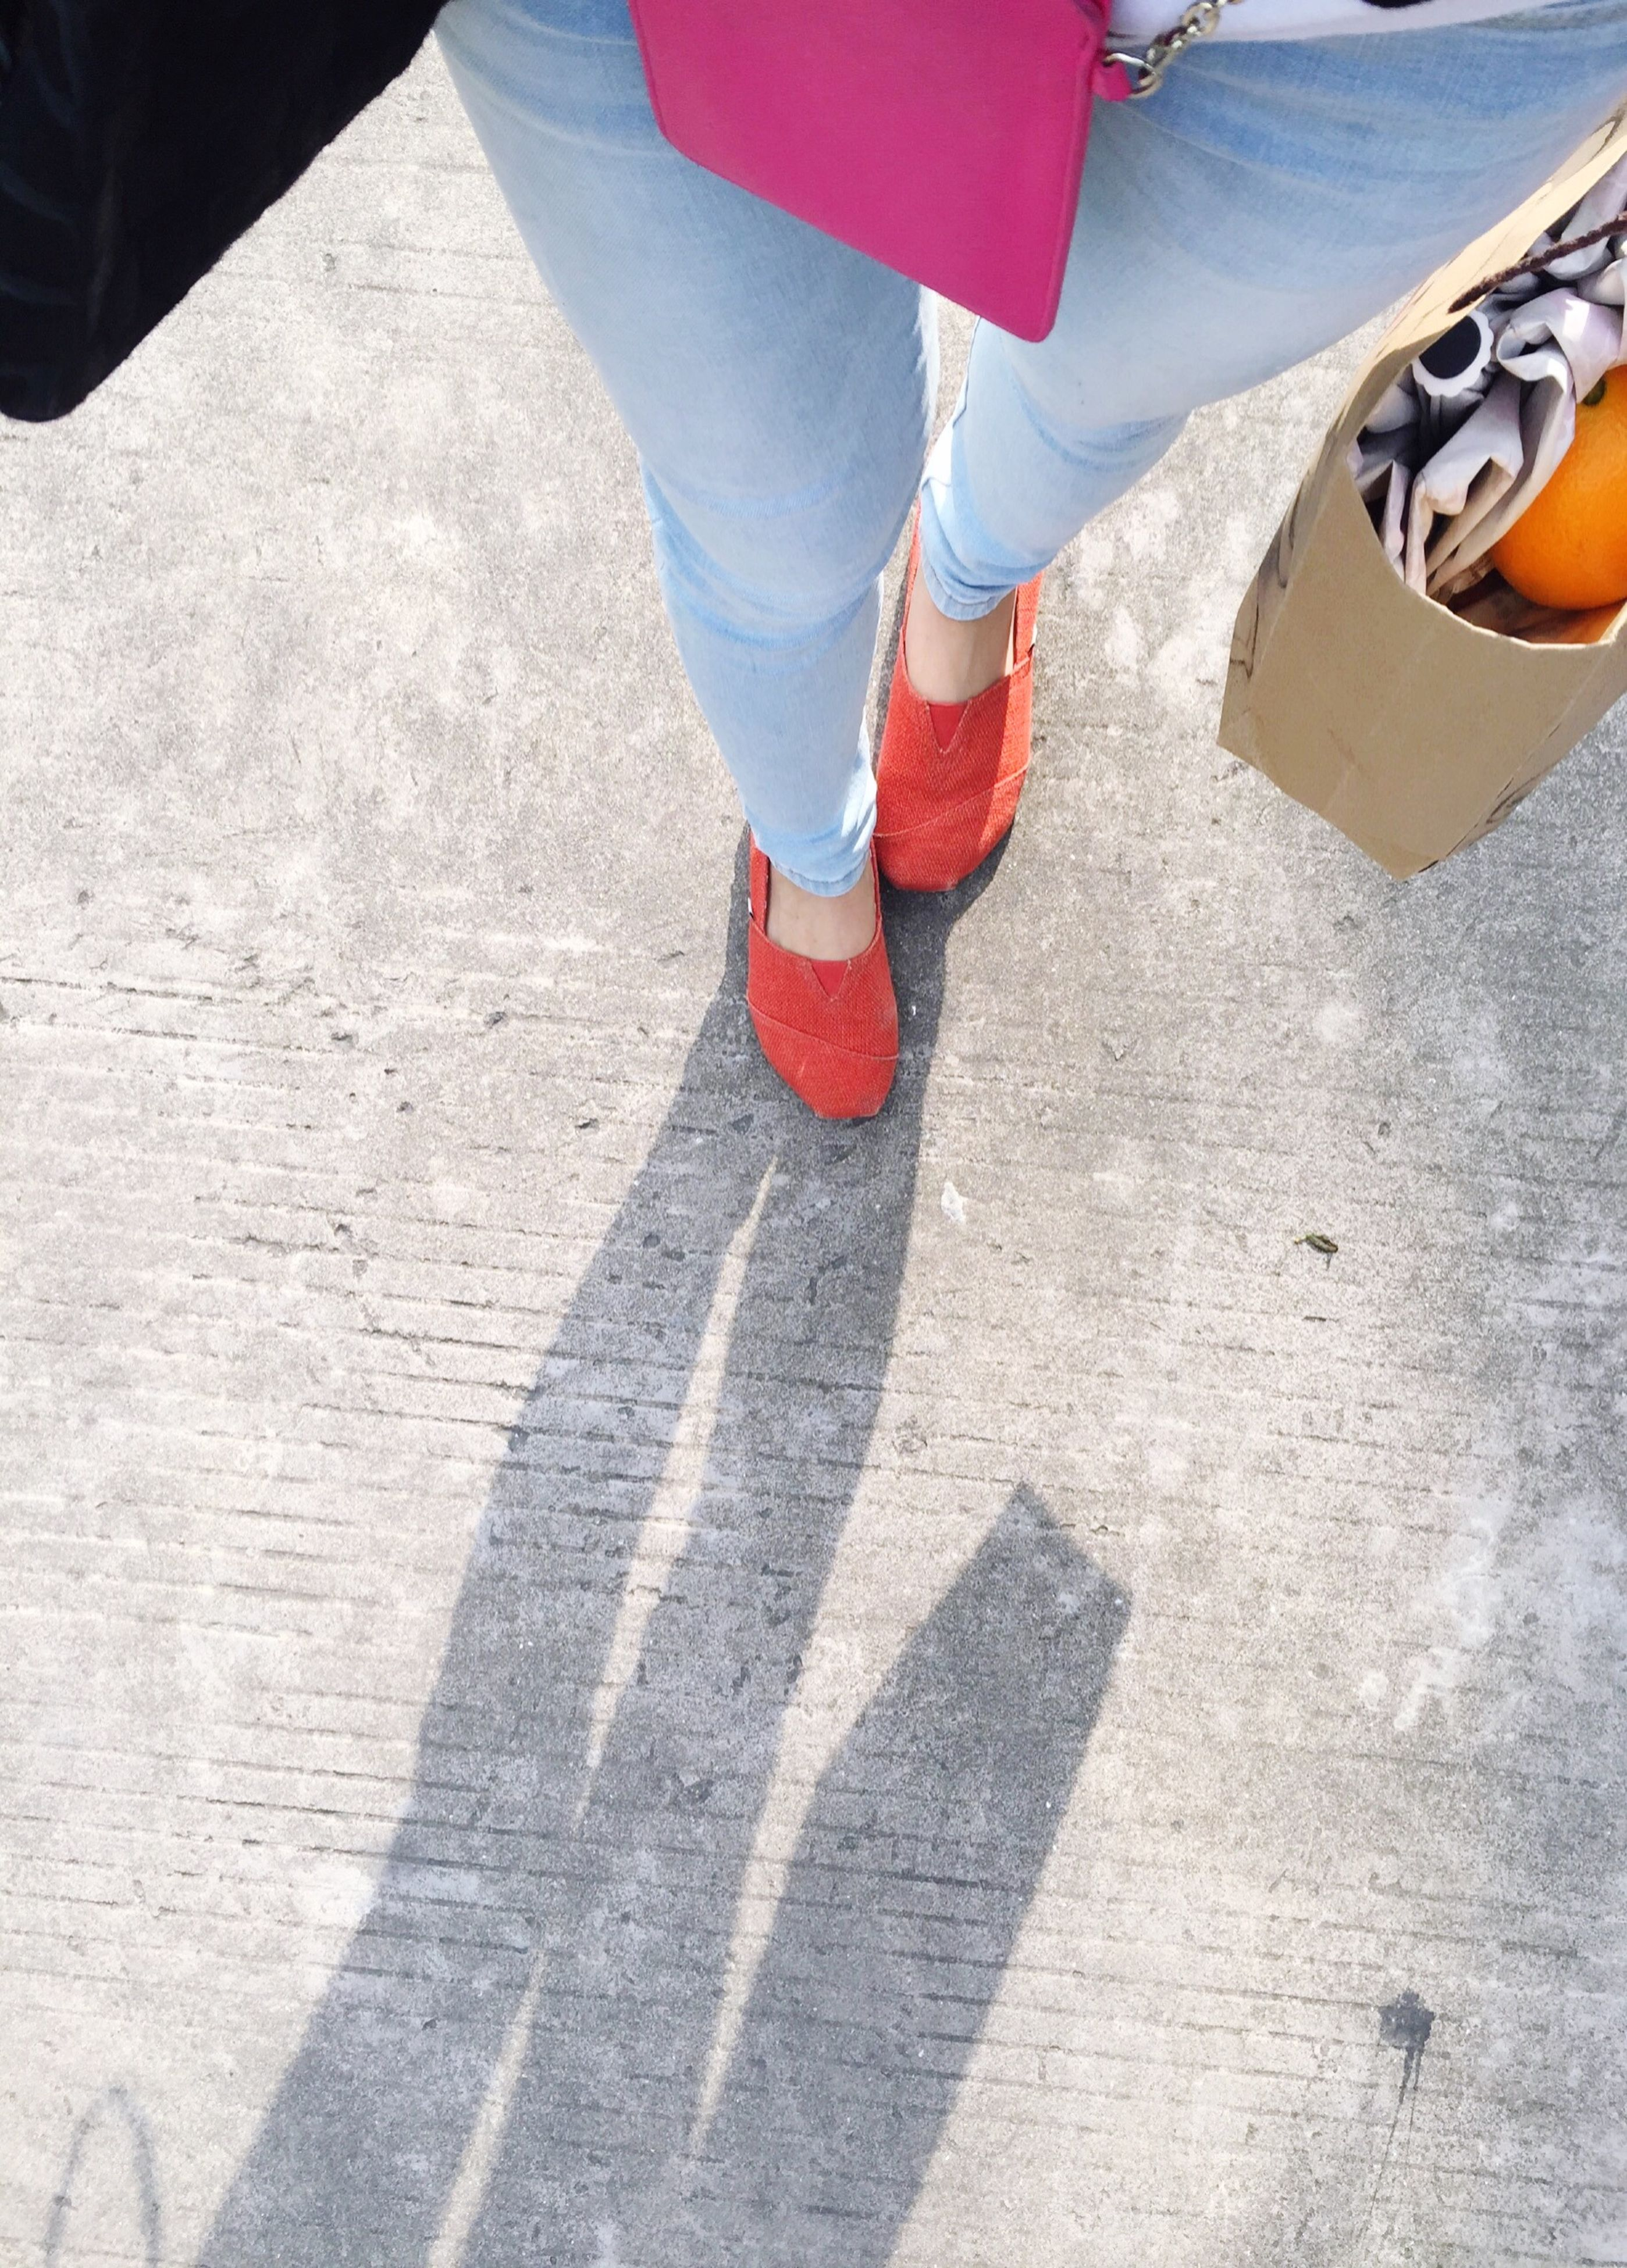 low section, person, lifestyles, street, men, shoe, high angle view, leisure activity, standing, walking, human foot, footwear, unrecognizable person, road, part of